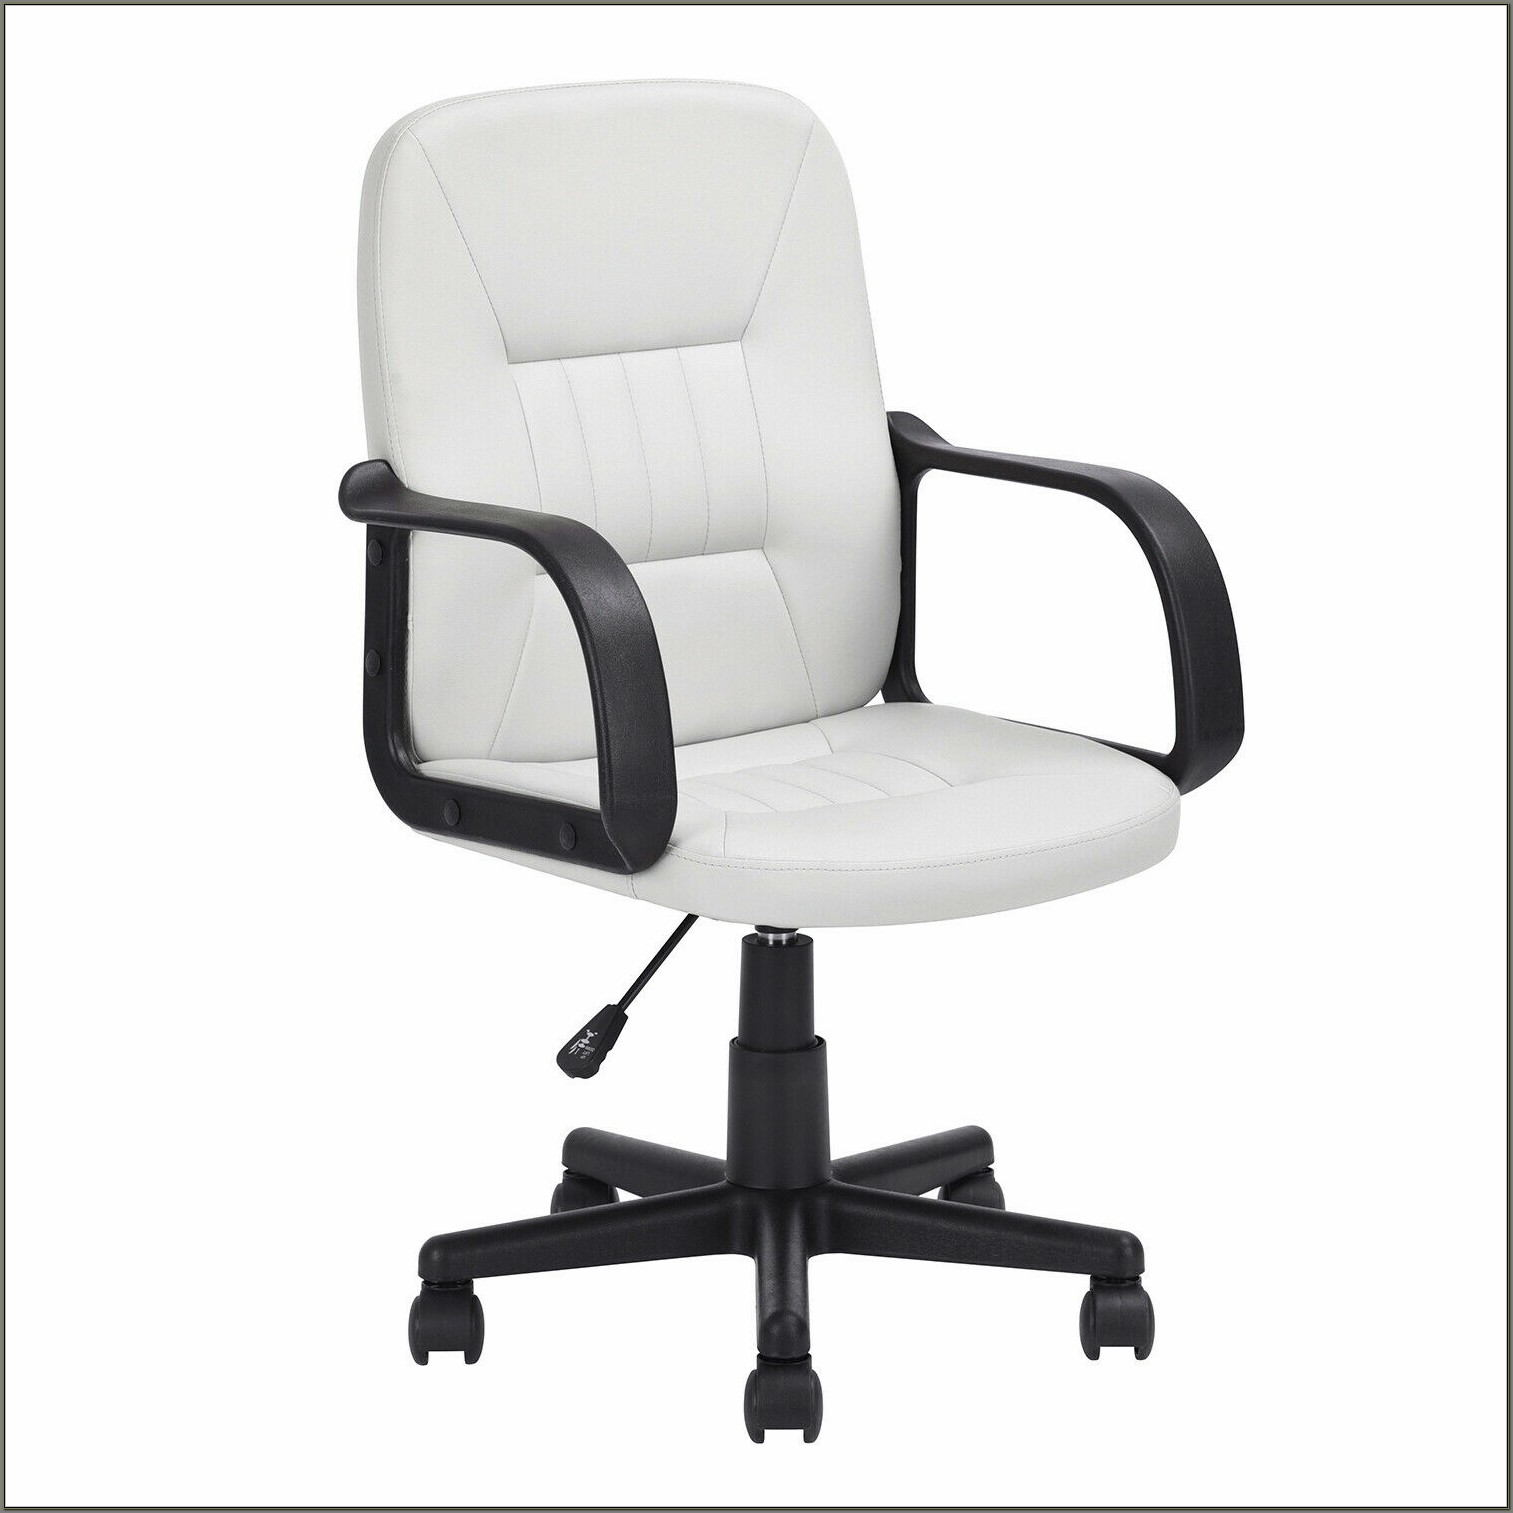 Swivel Desk Chair With Arms